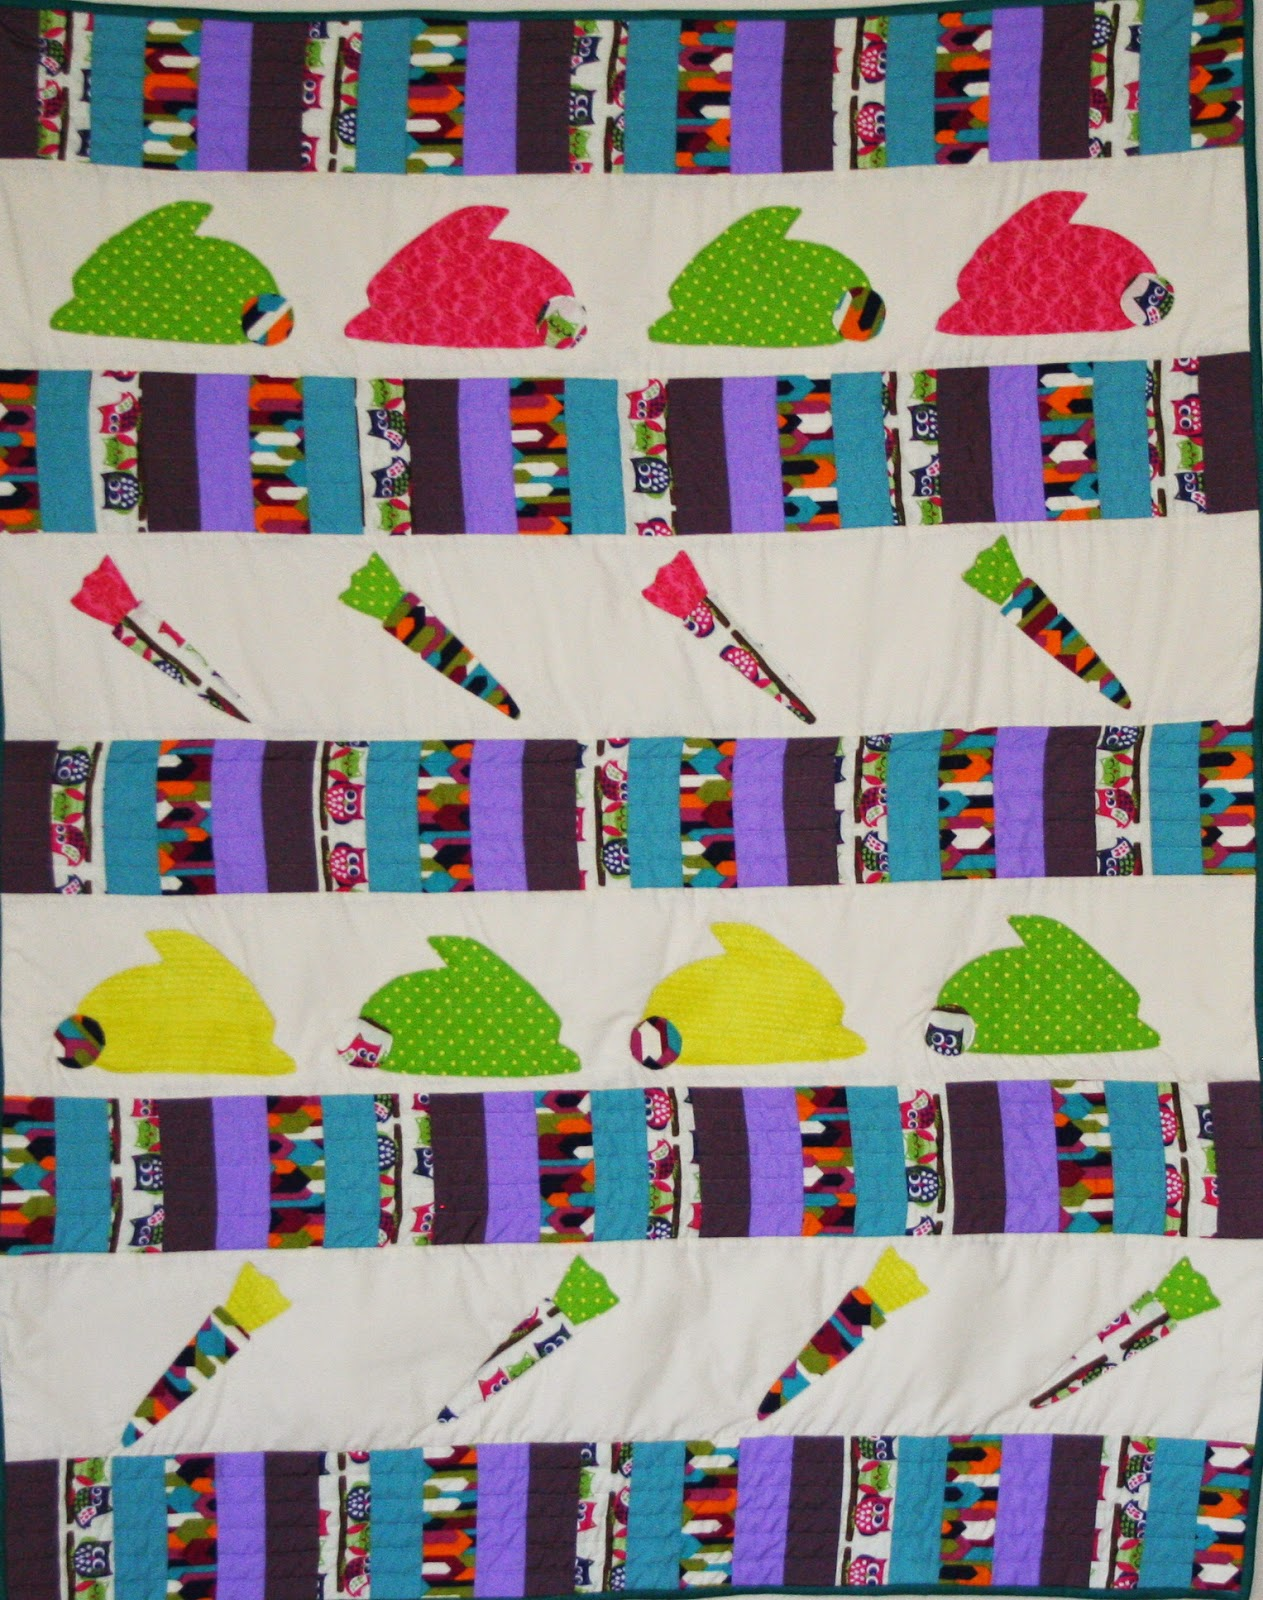 Quiltsmart Bunnies and Carrots quilt